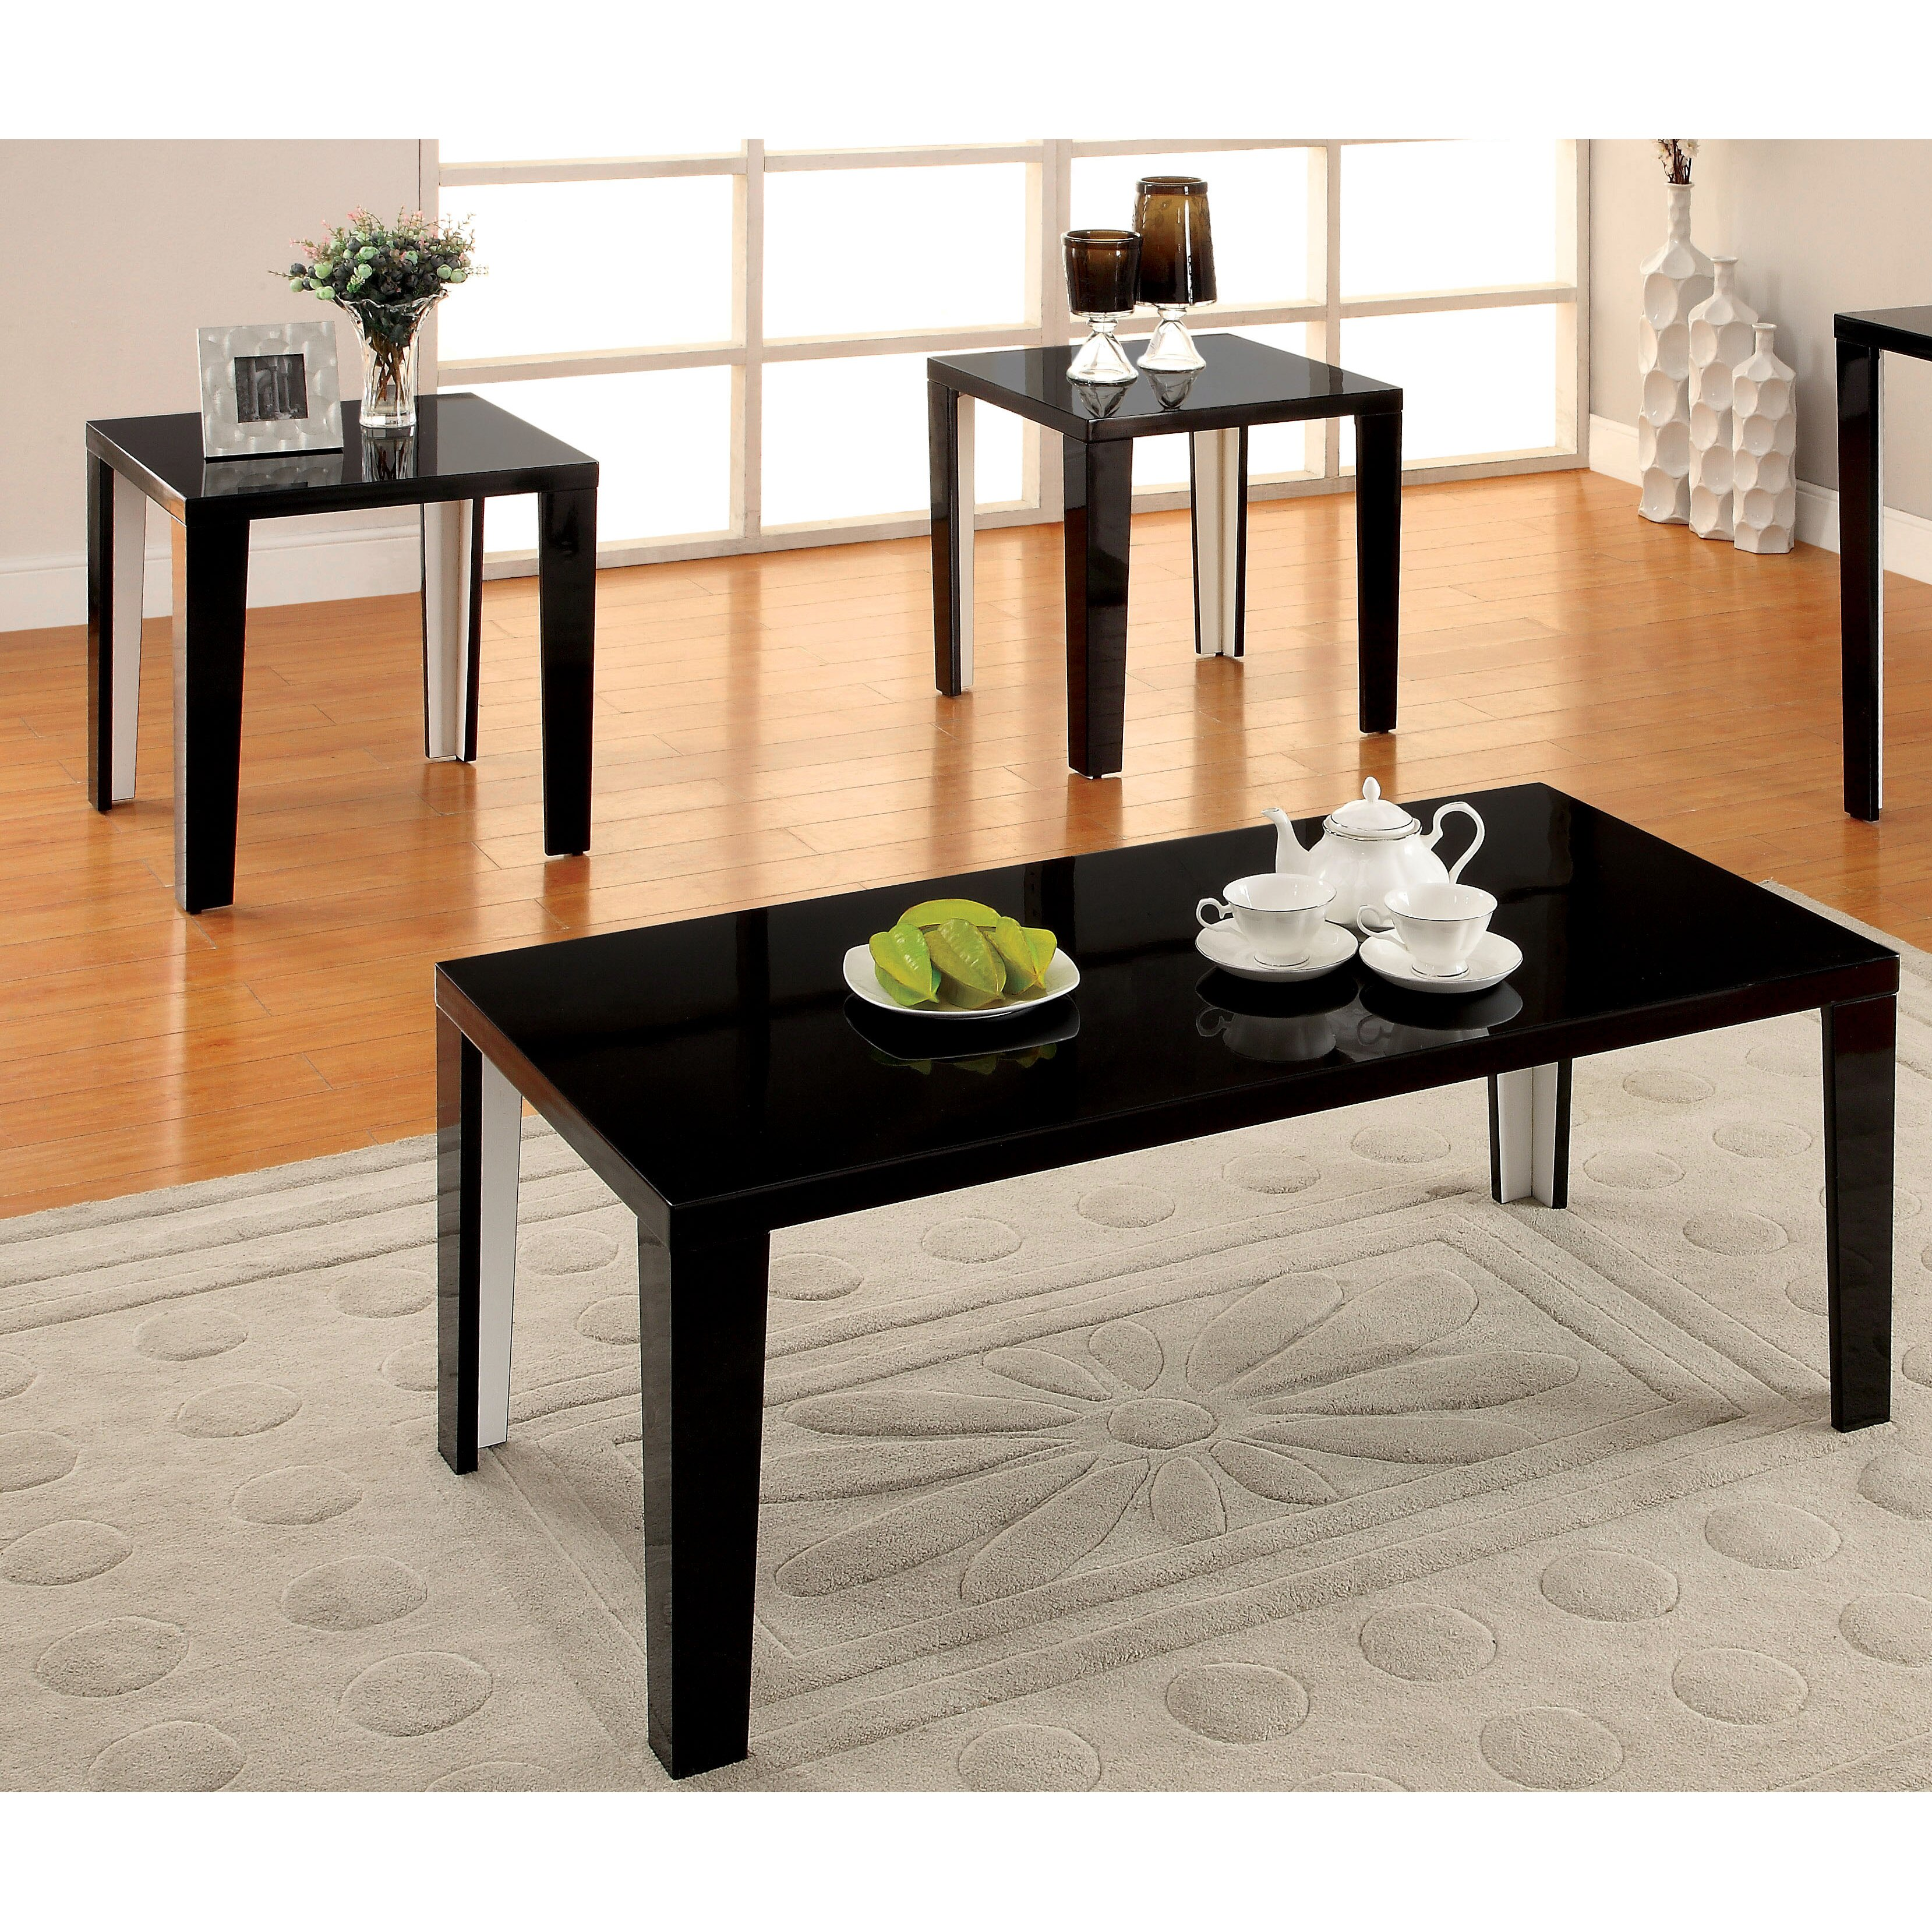 Hokku Designs Enichi 3 Piece Coffee Table Set & Reviews